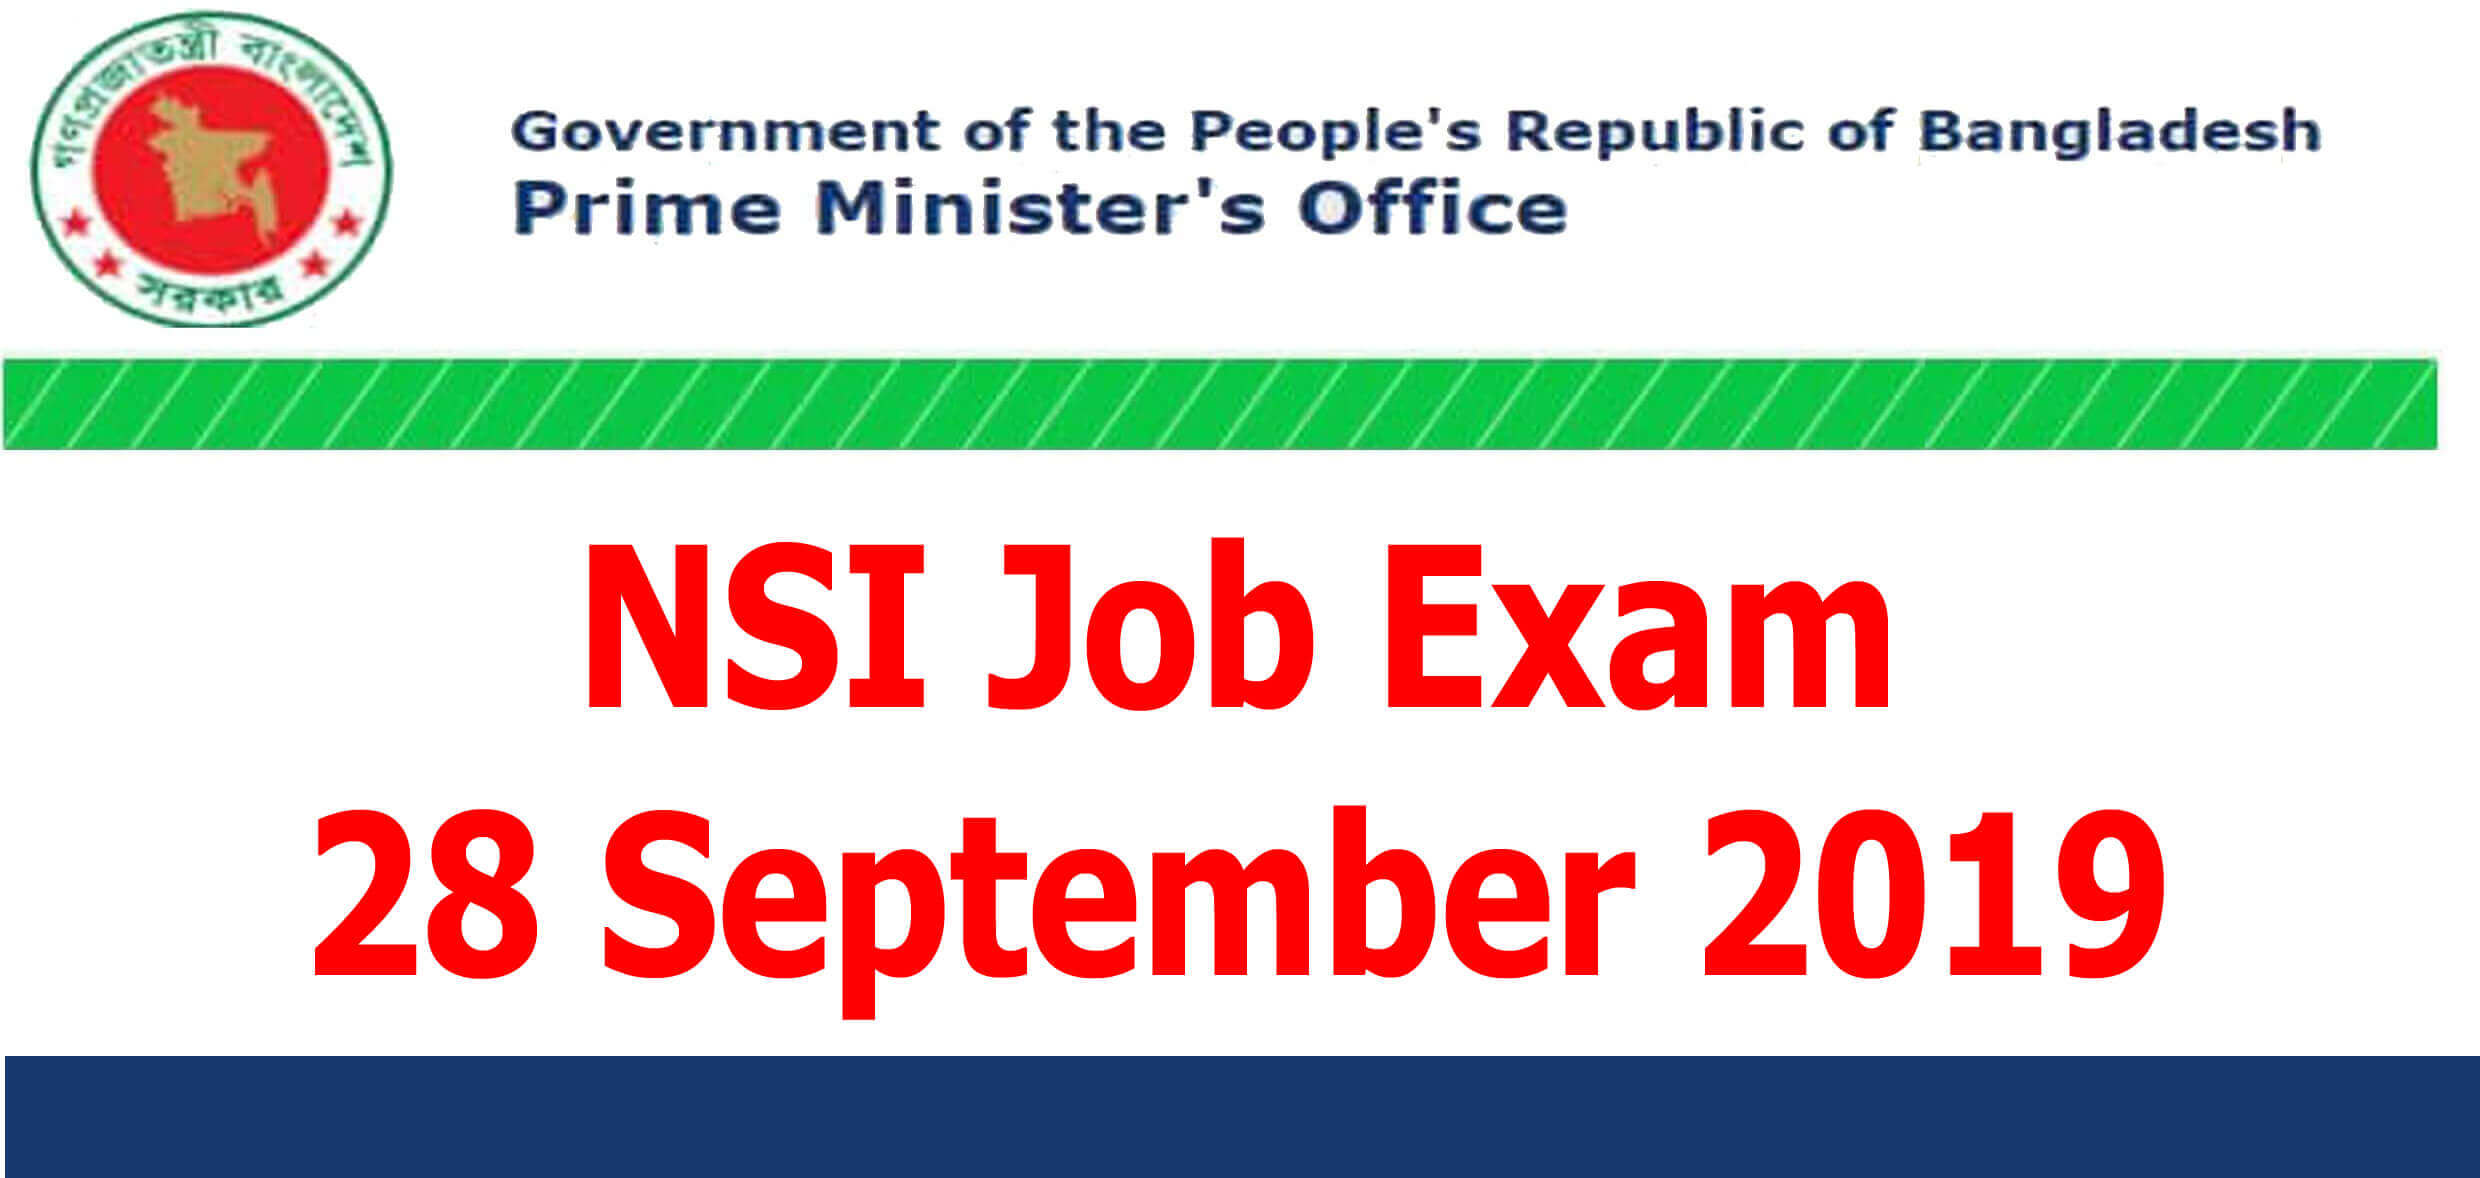 nsi job exam 28 September 2019